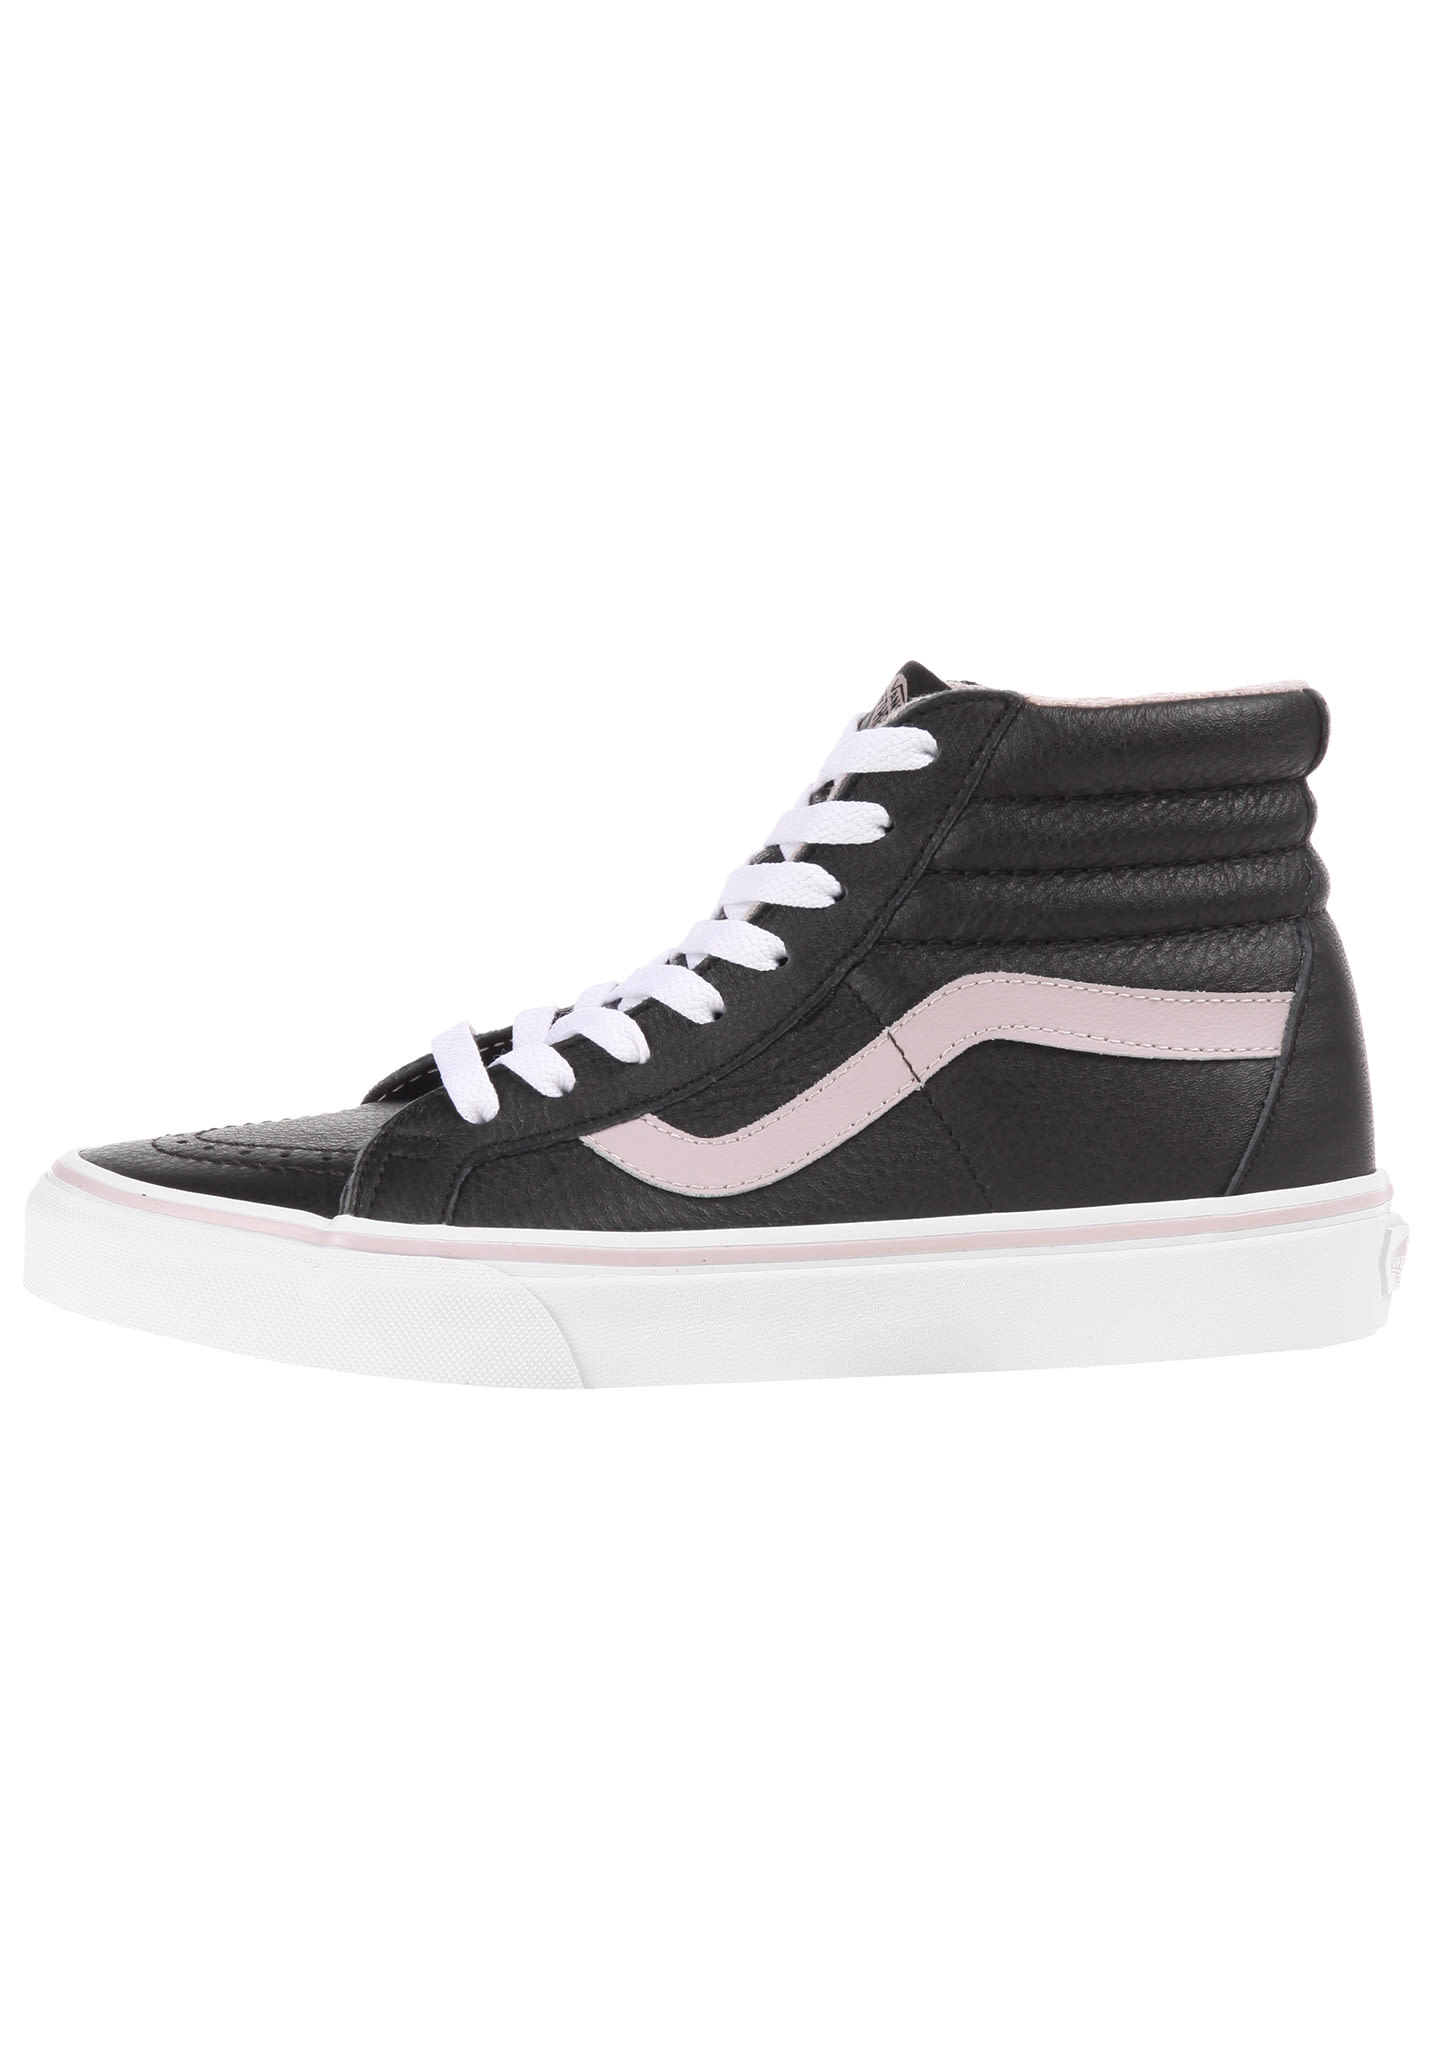 6097a2bec1 Vans Sk8-Hi Reissue - Sneakers for Women - Brown - Planet Sports